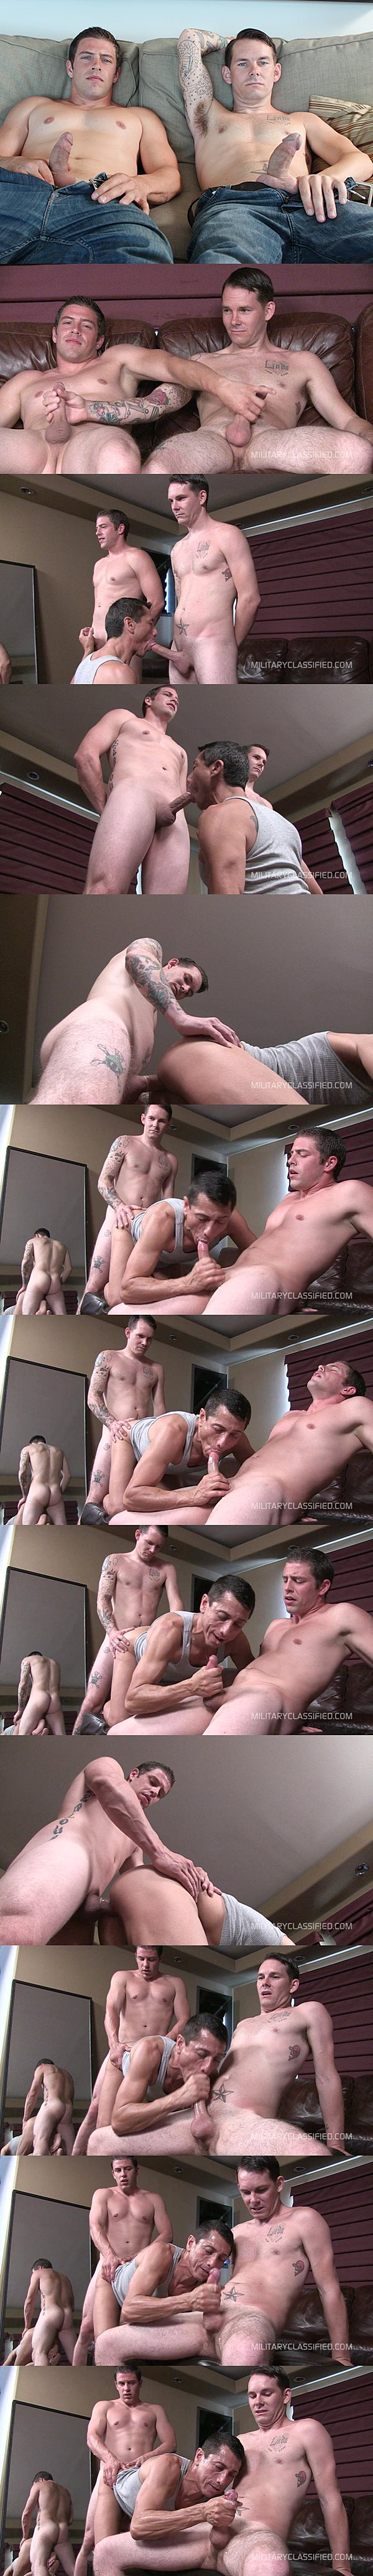 Sexy straight military studs Bobby & Braubaker fuck Rob till they get their hot loads jerked off at Militaryclassified 02